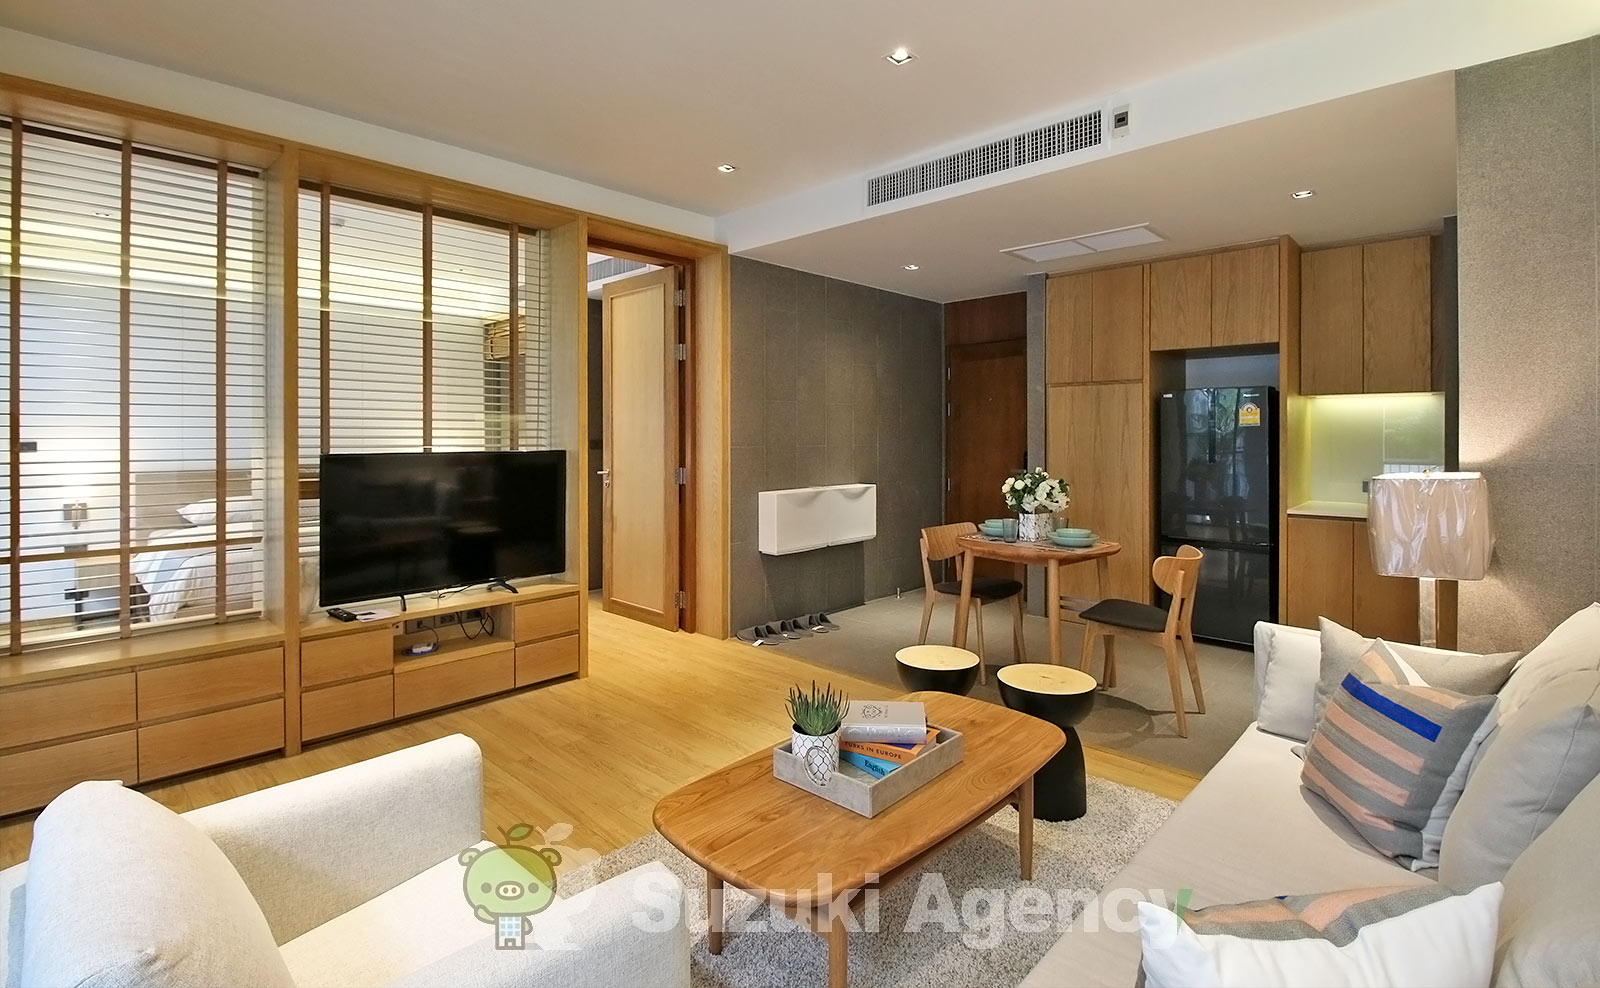 Jitimont Residence:1Bed Room Photos No.4